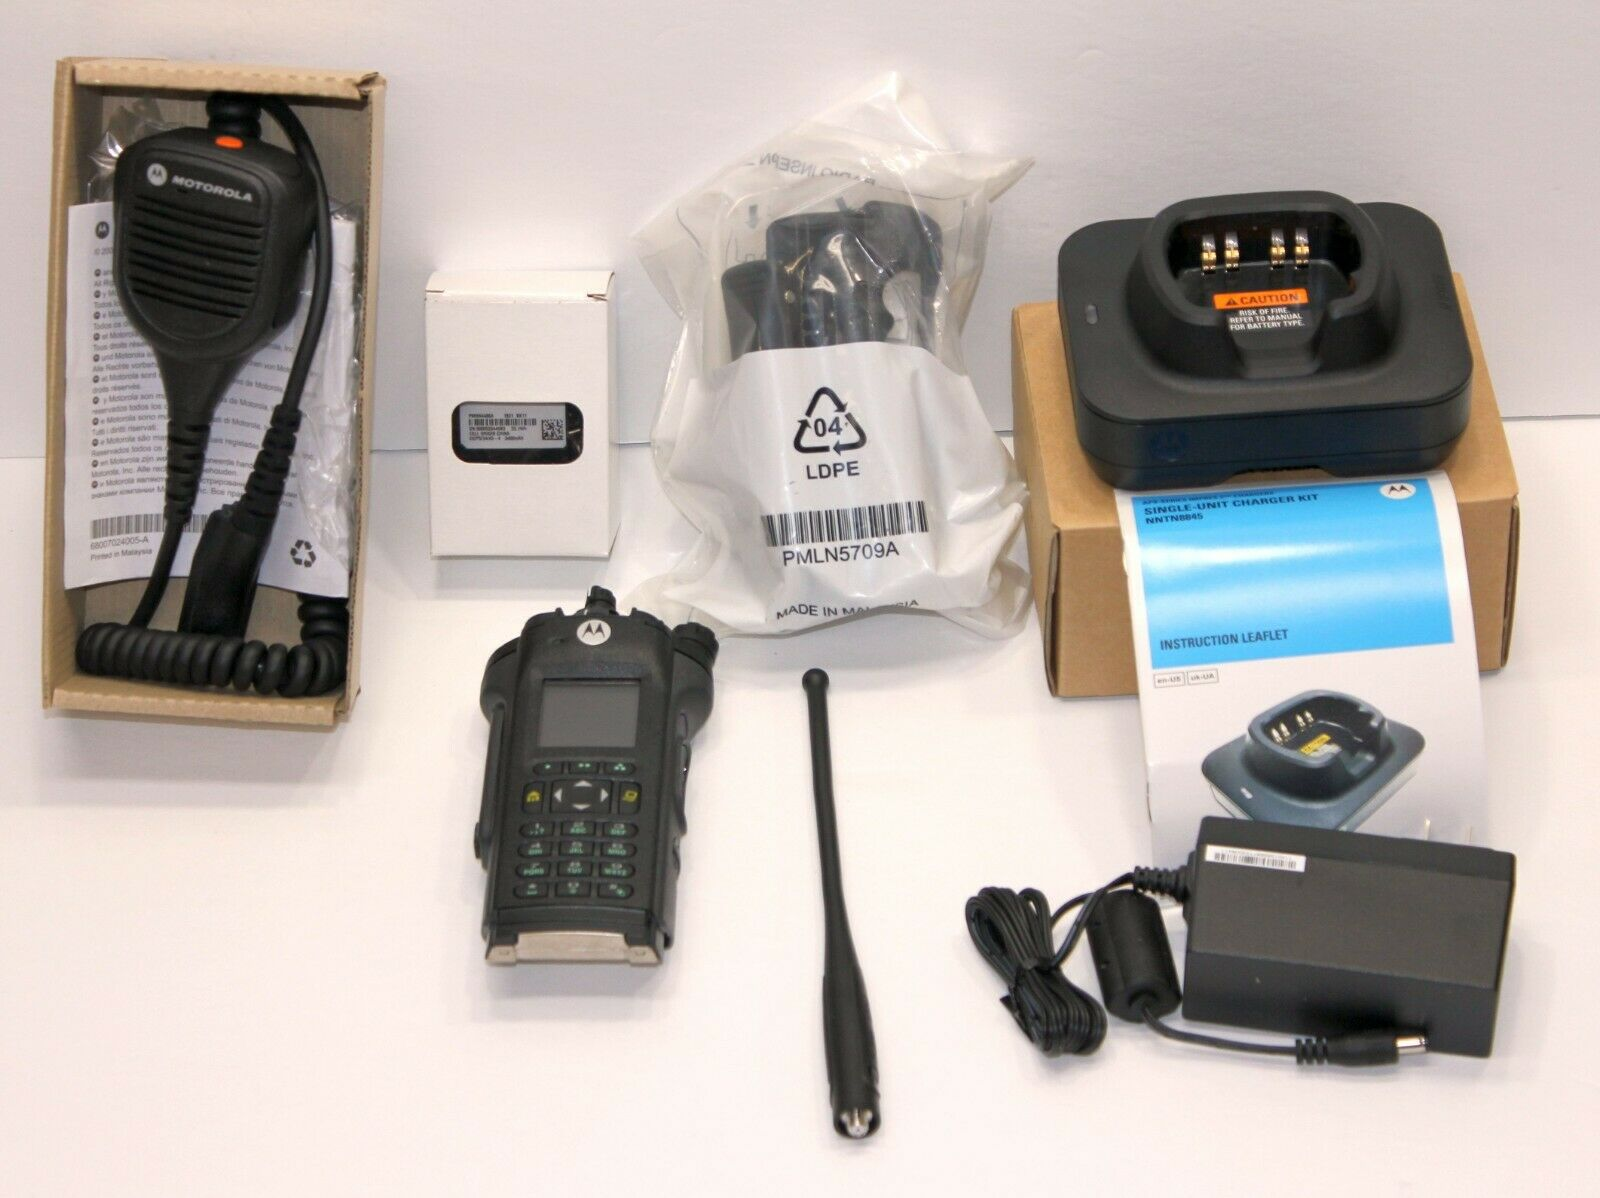 TESTED MOTOROLA APX APX6000 700/800 Bluetooth DIGITAL RADIO P25 TDMA AES  ADP. Buy it now for 1999.99